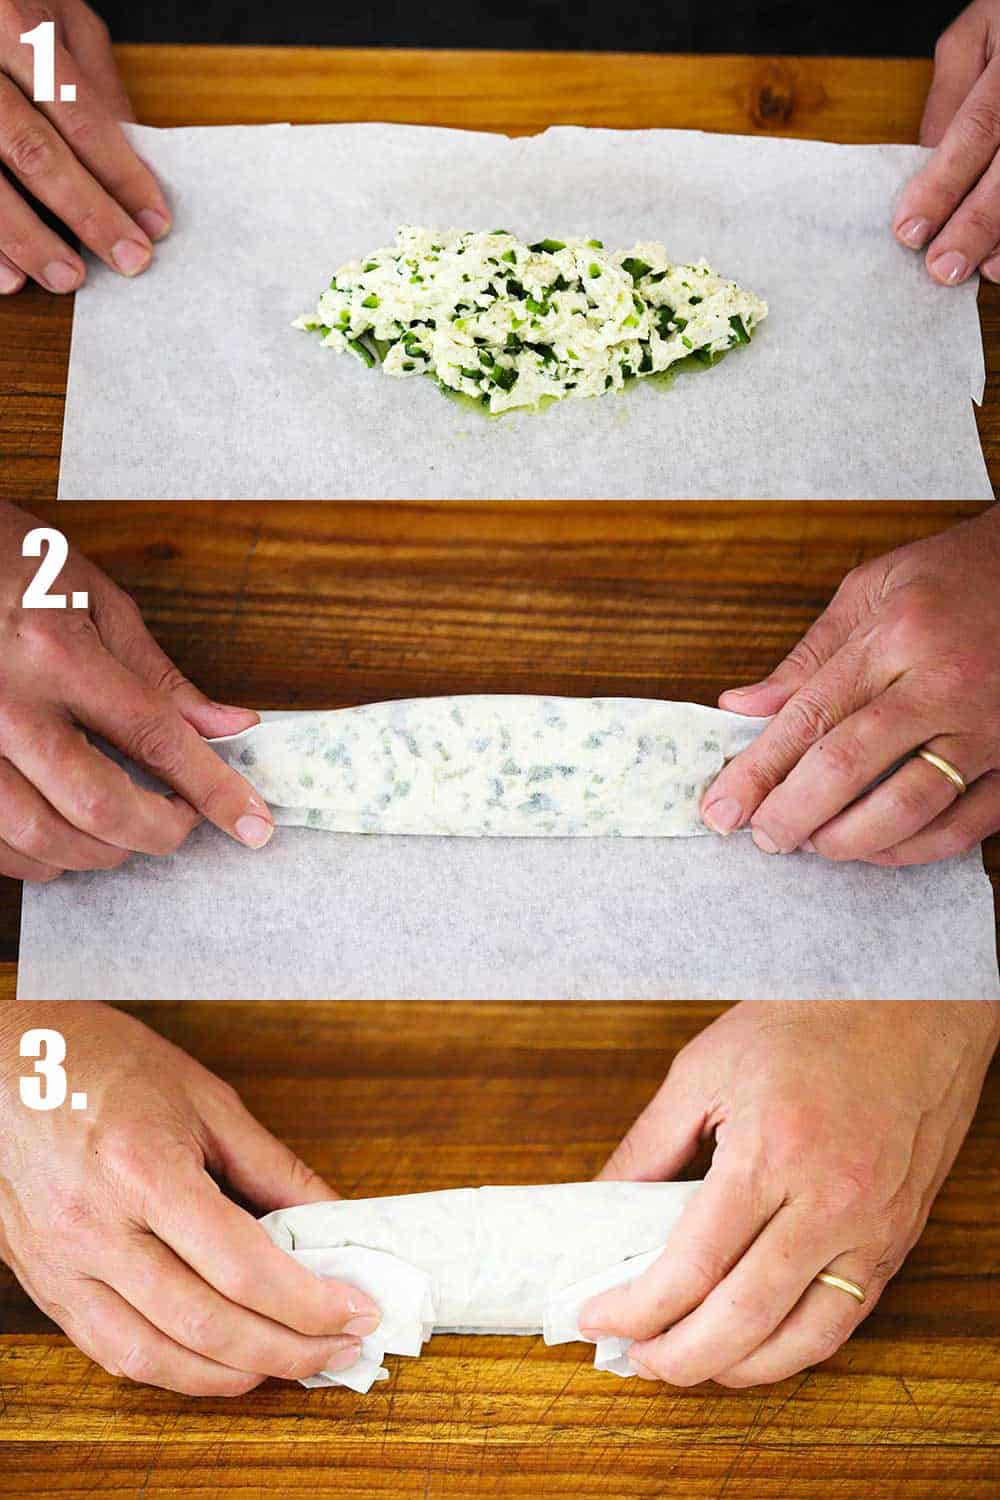 3 stacked photos, the 1st is a rectangle shape of softened butter with peppers mixed in all on parchment paper, next to hands rolling the parchment paper over the butter, the 3rd the two hands folding in the ends of the paper.